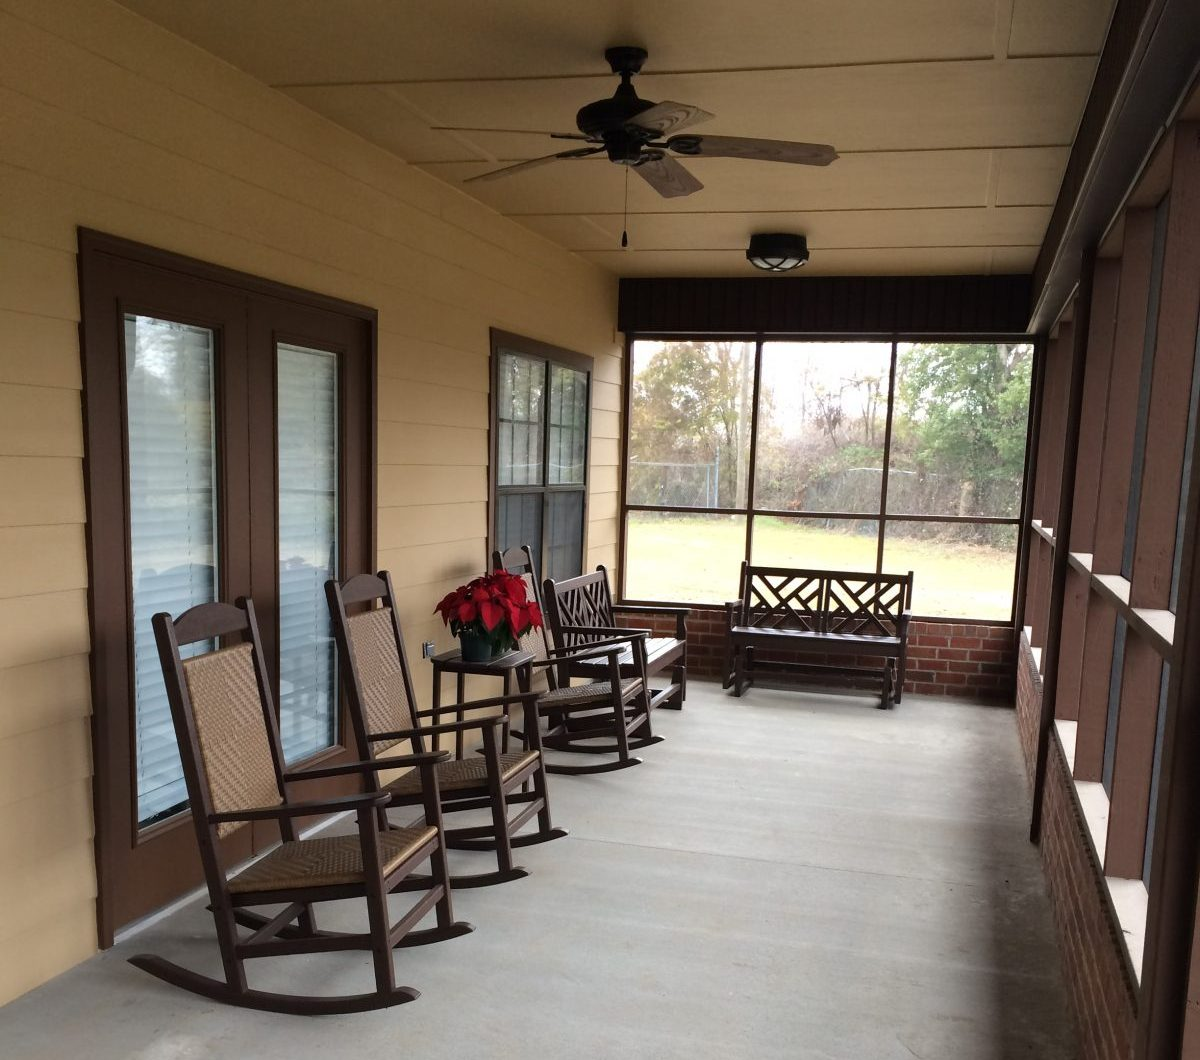 magnolia terrace porch and chairs